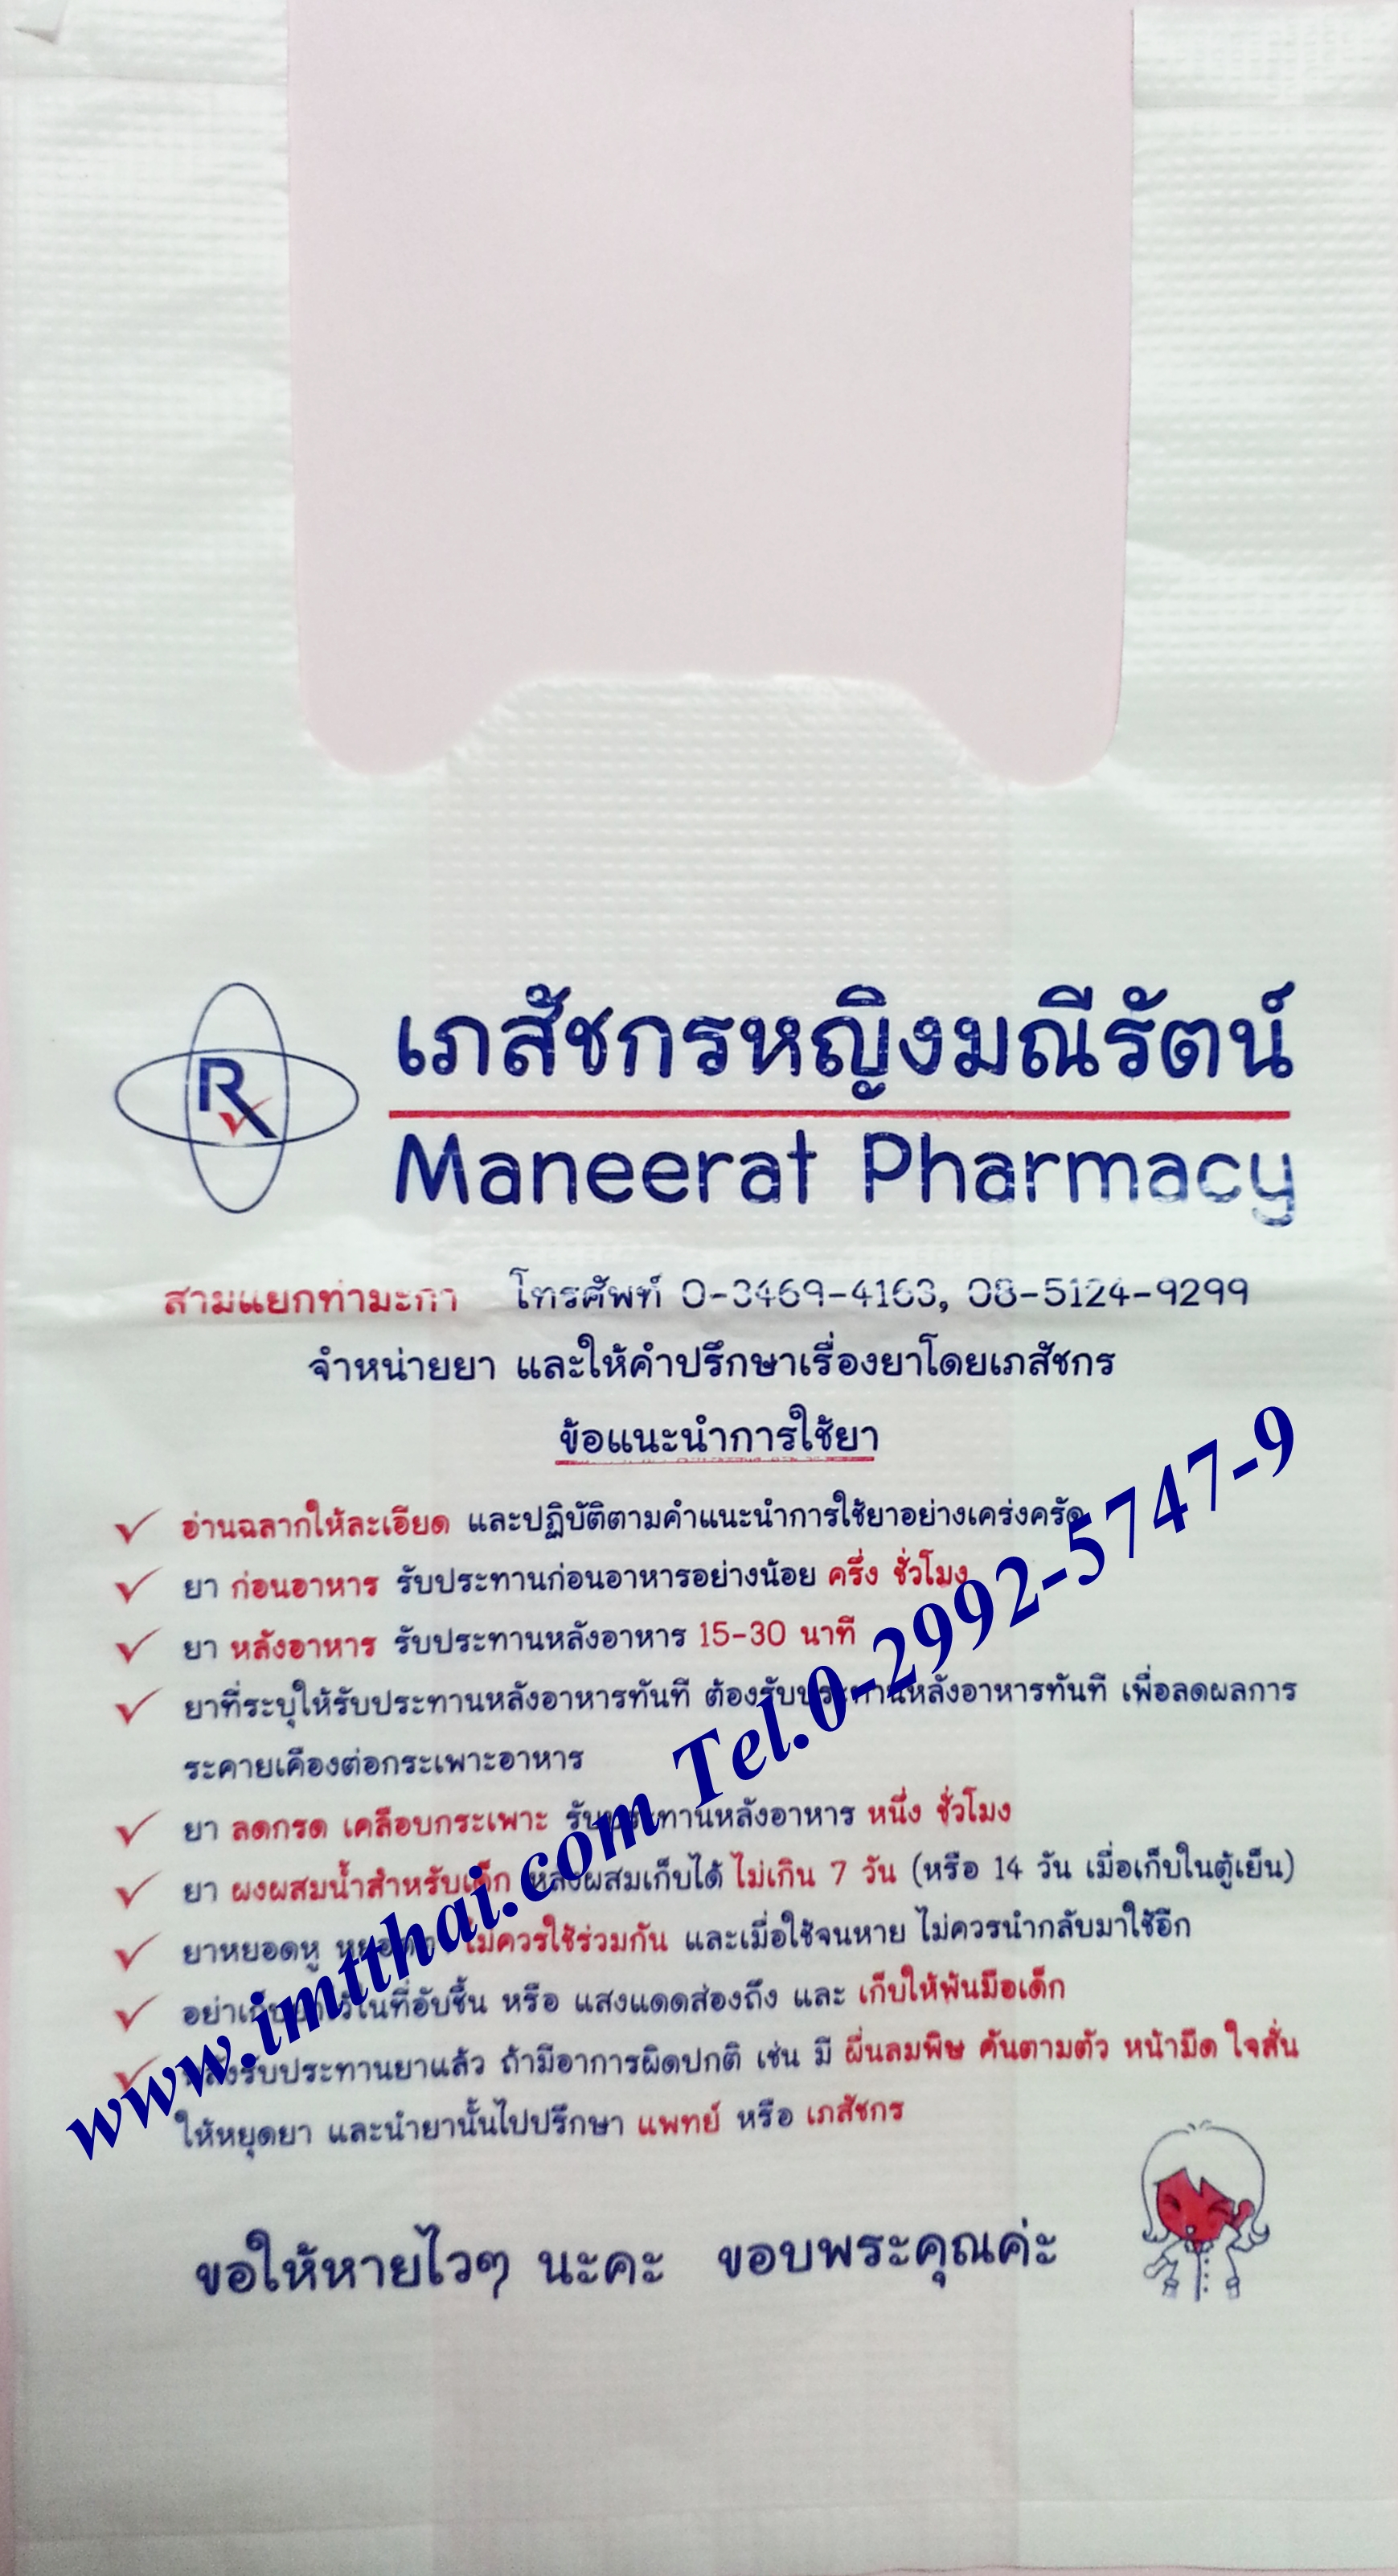 6x11maneeratpharmacy